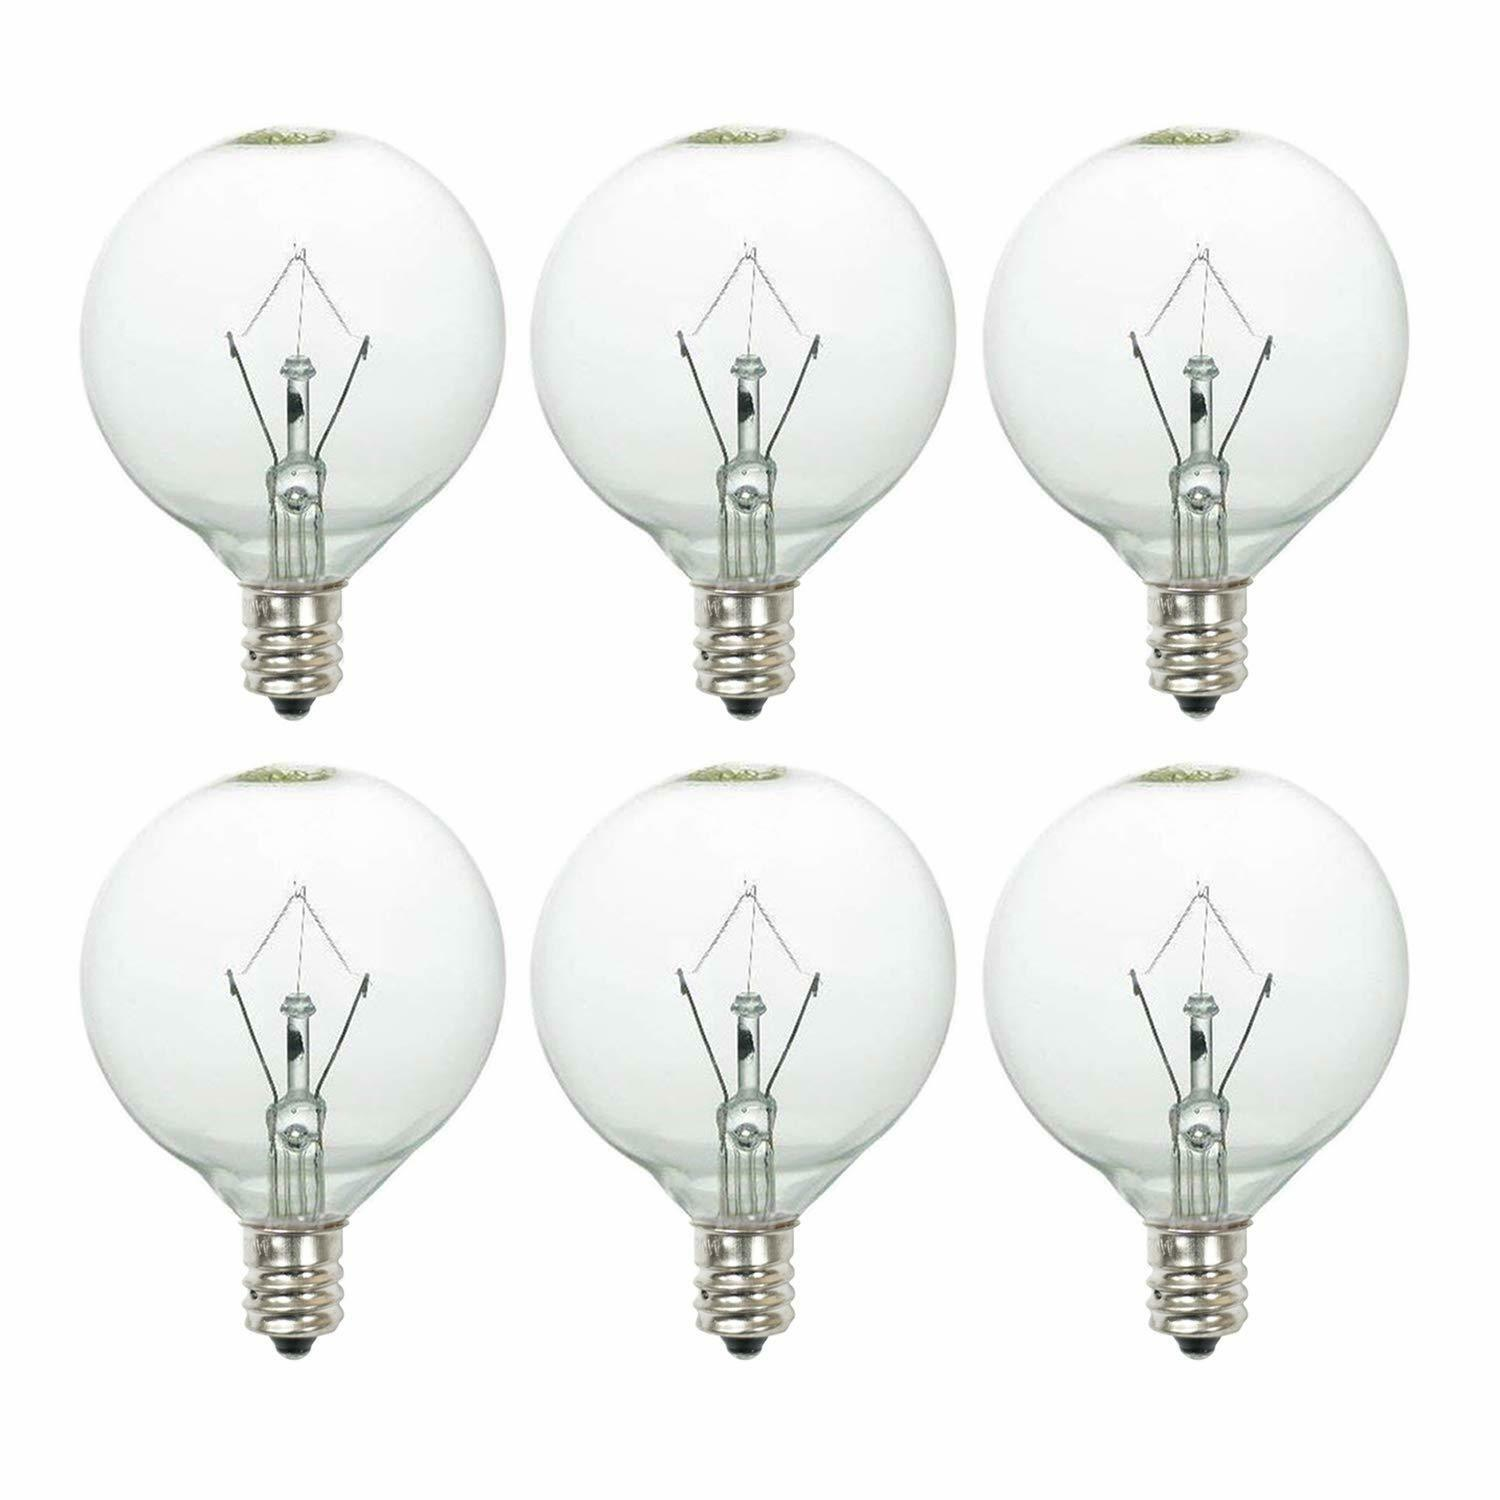 25W 120V Globe Light Bulbs for Scentsy Full Size Candle Wax